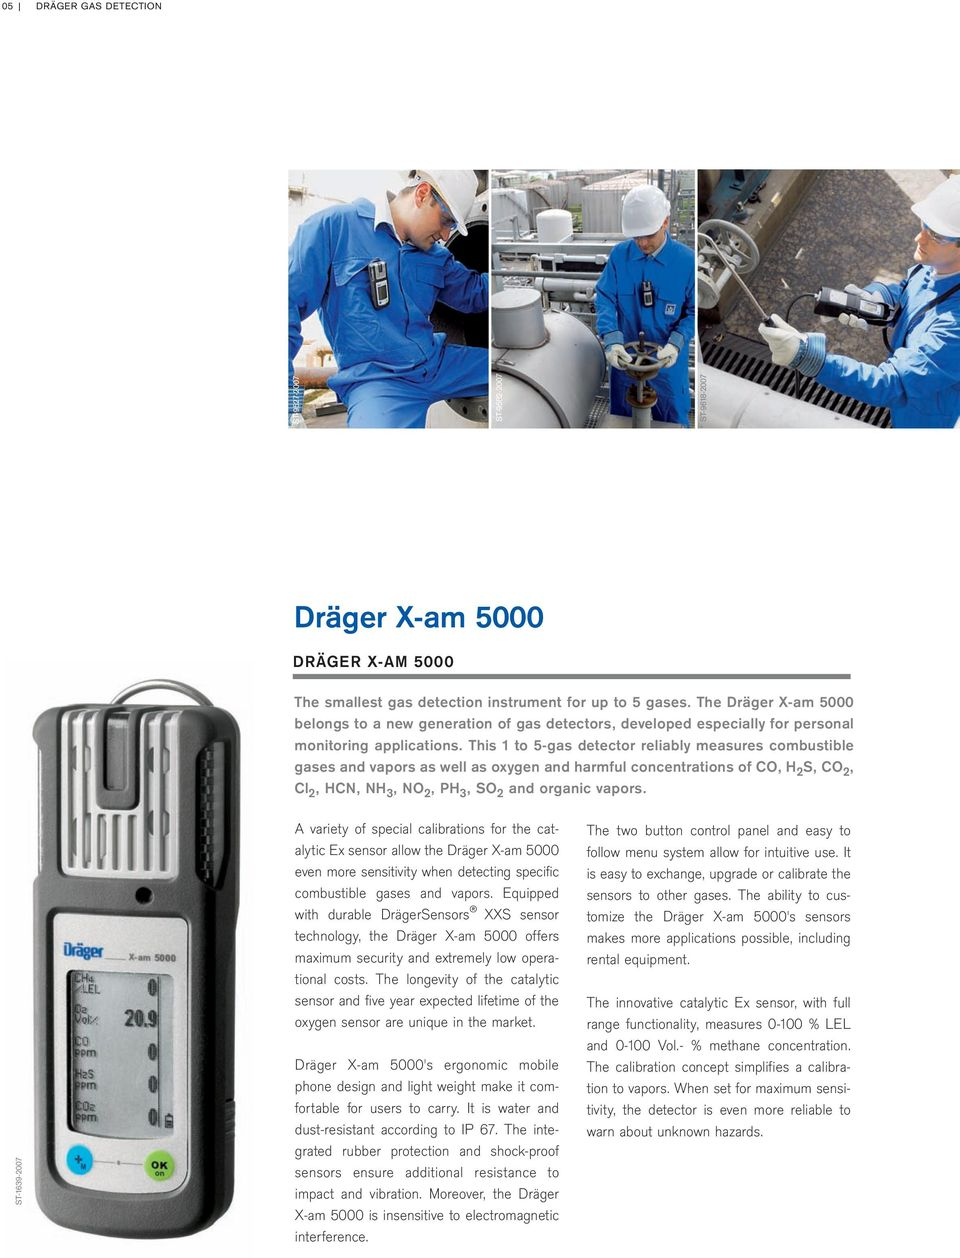 This 1 to 5-gas detector reliably measures combustible gases and vapors as well as oxygen and harmful concentrations of CO, H 2 S, CO 2, Cl 2, HCN, NH 3, NO 2, PH 3, SO 2 and organic vapors.